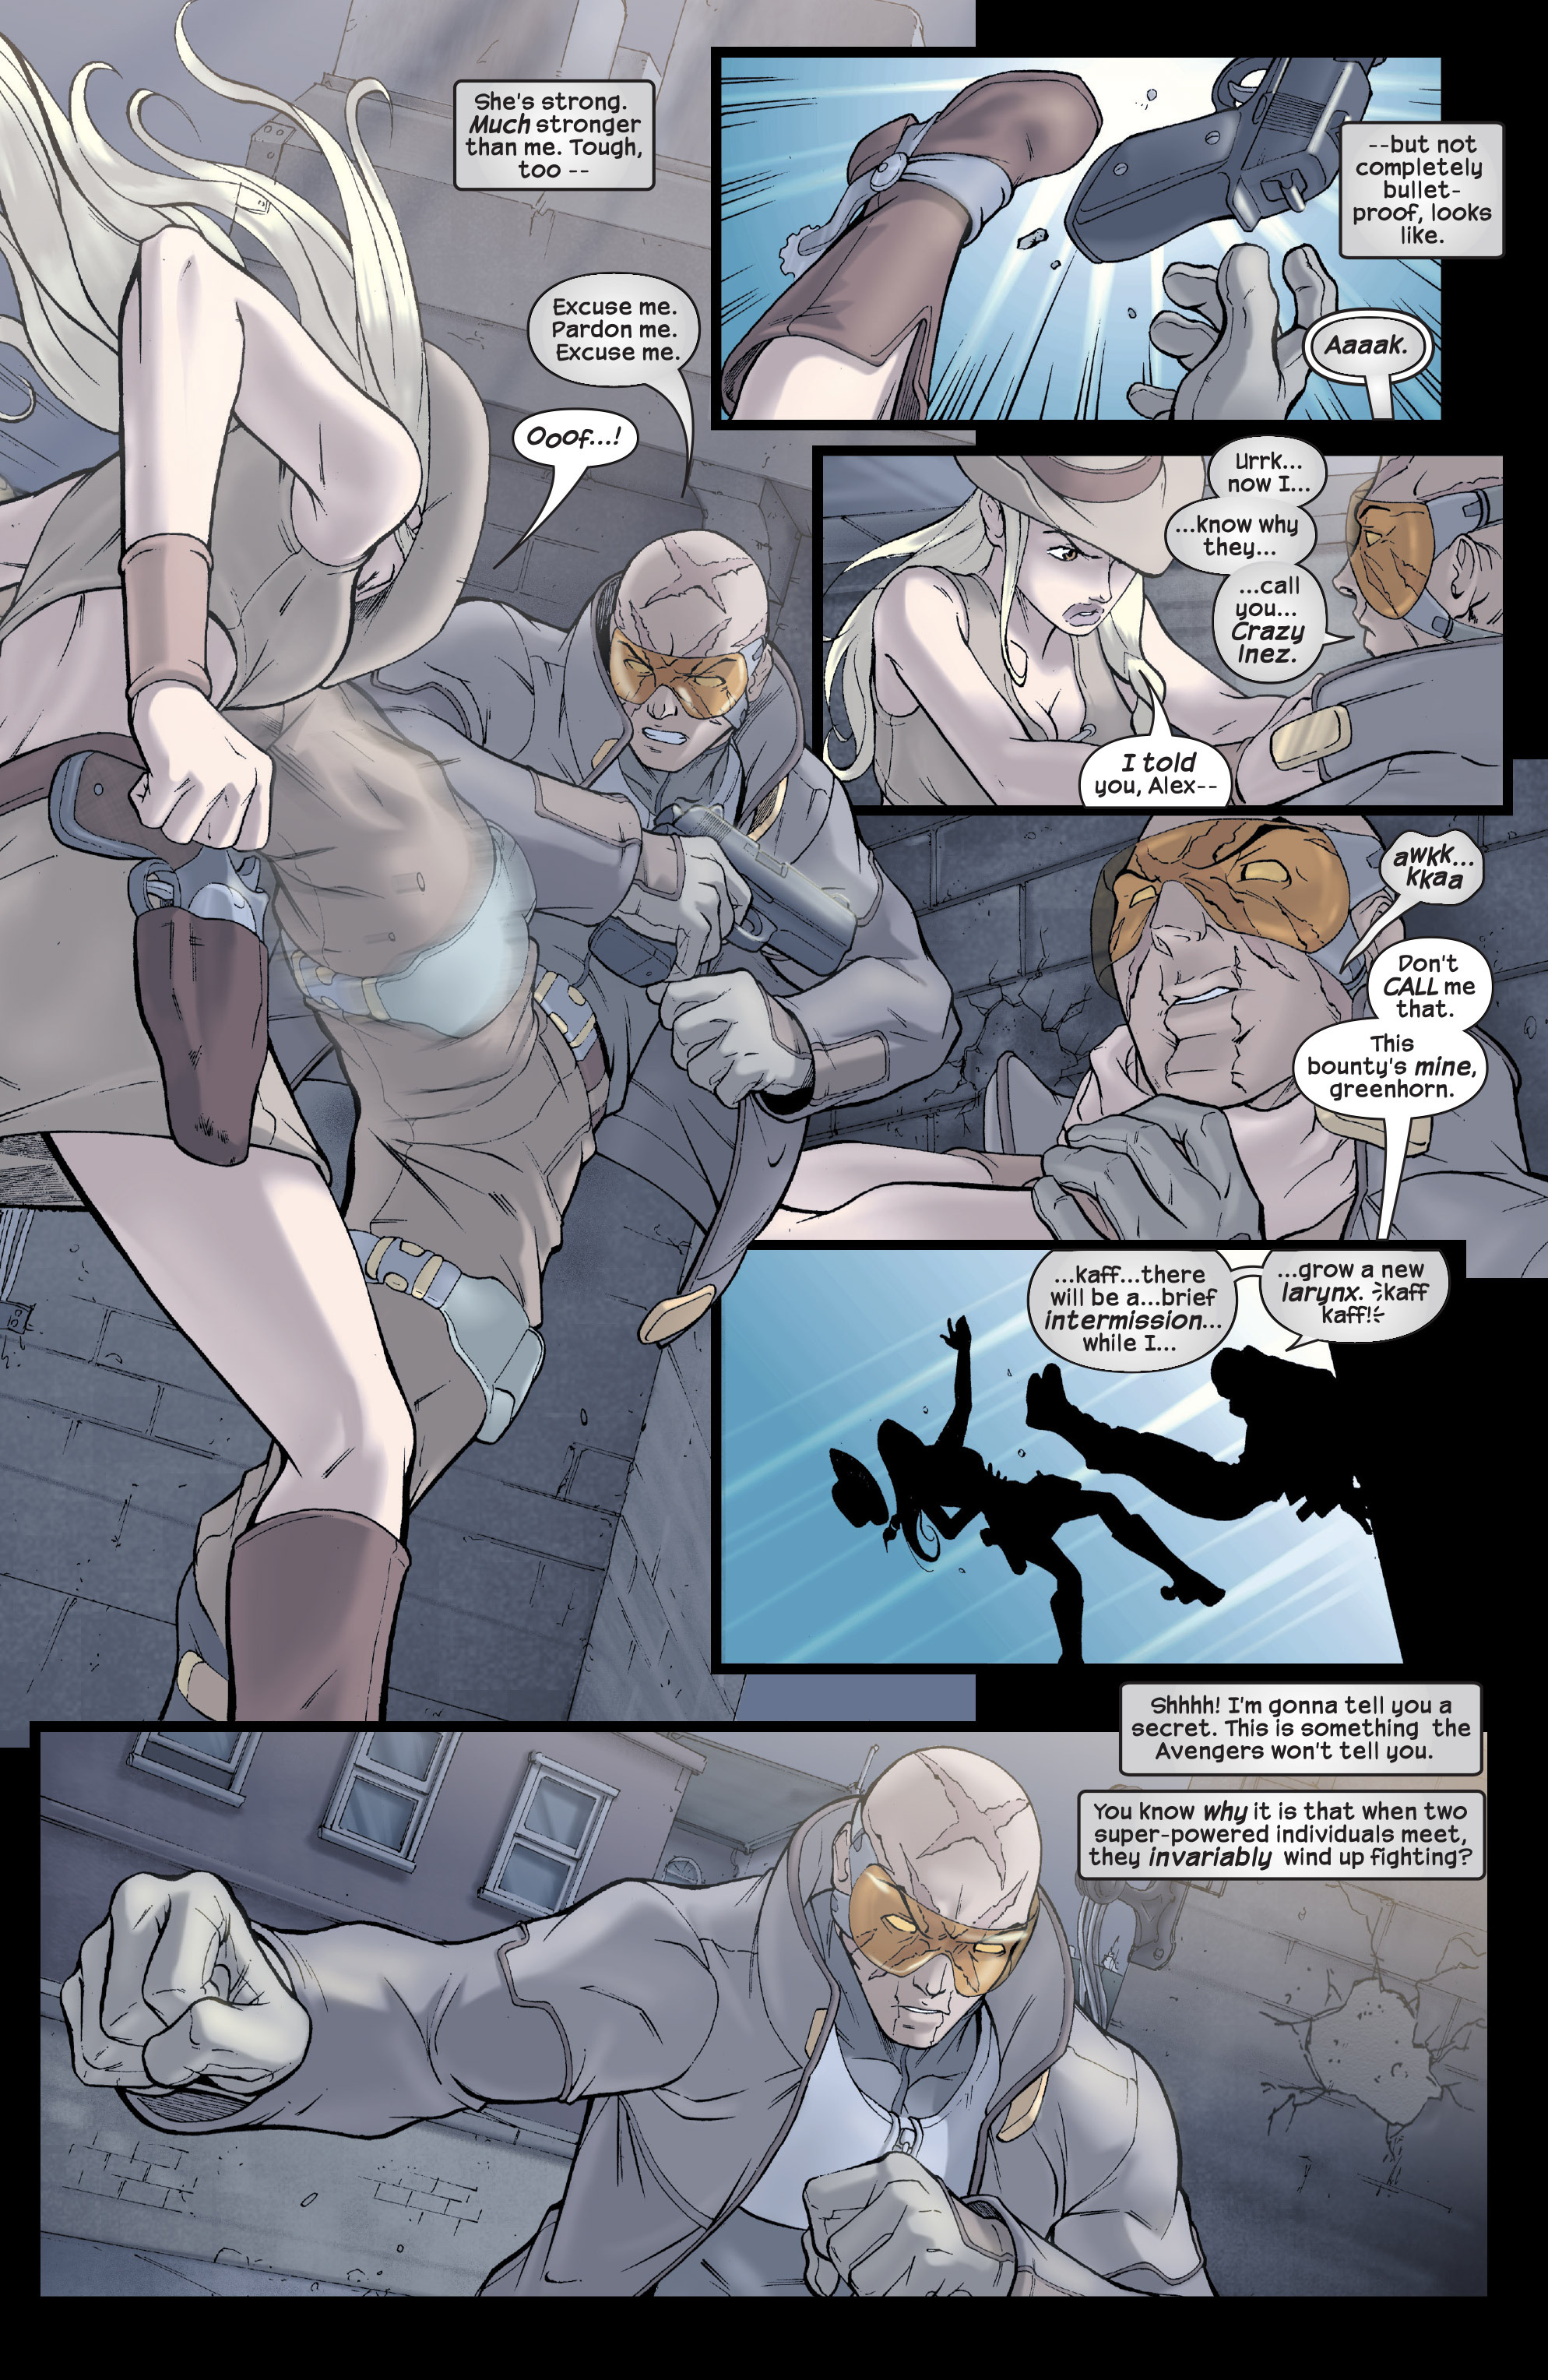 Read online Agent X comic -  Issue #2 - 13